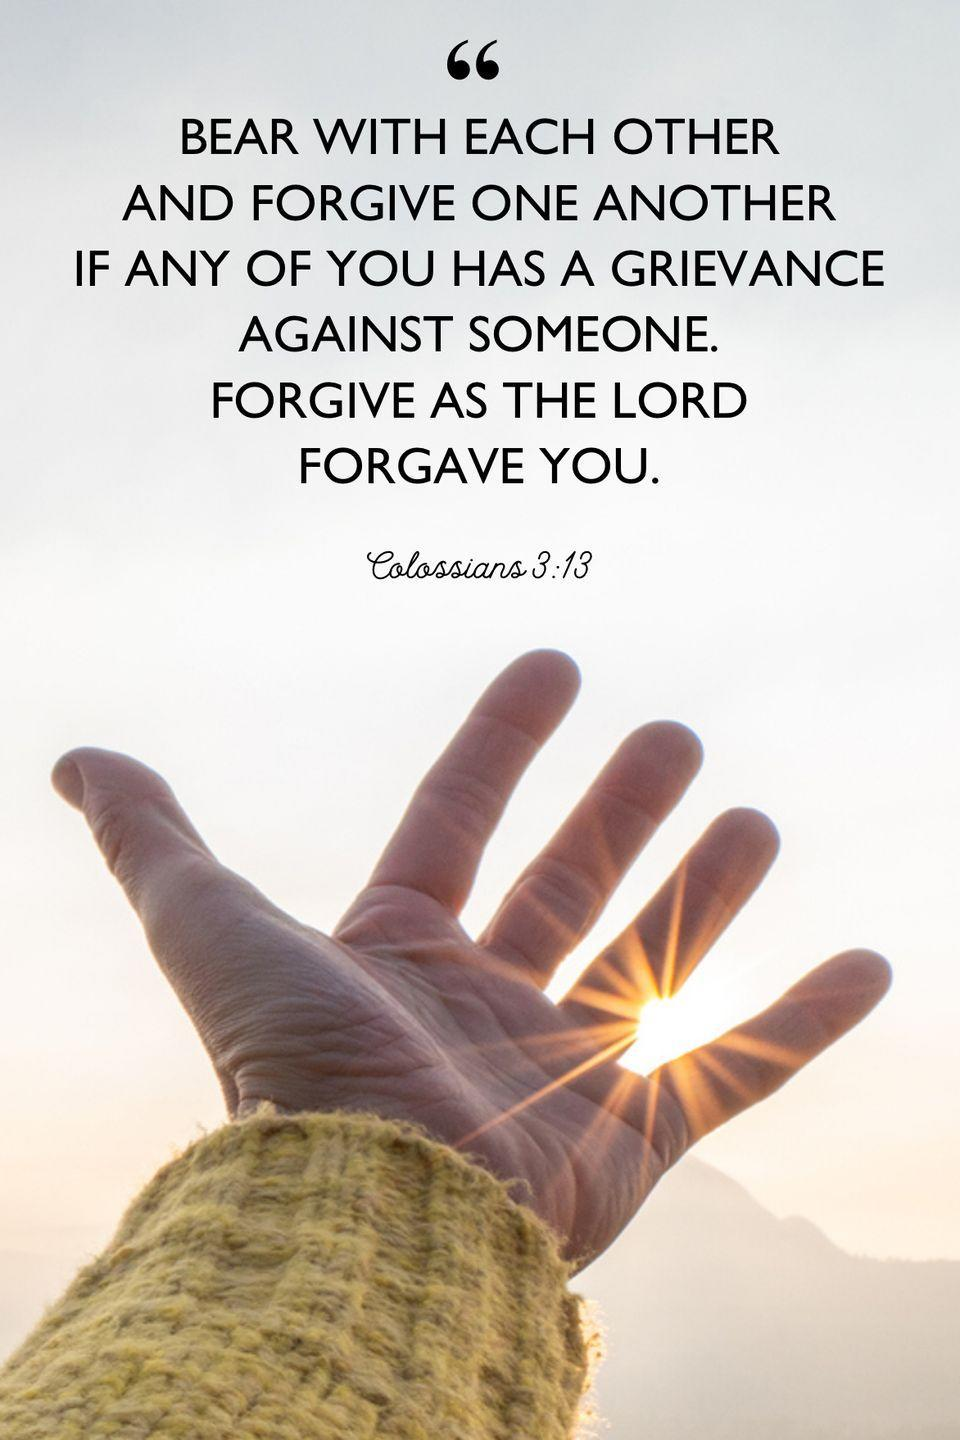 """<p>""""Bear with each other and forgive one another if any of you has a grievance against someone. Forgive as the Lord forgave you.""""</p>"""